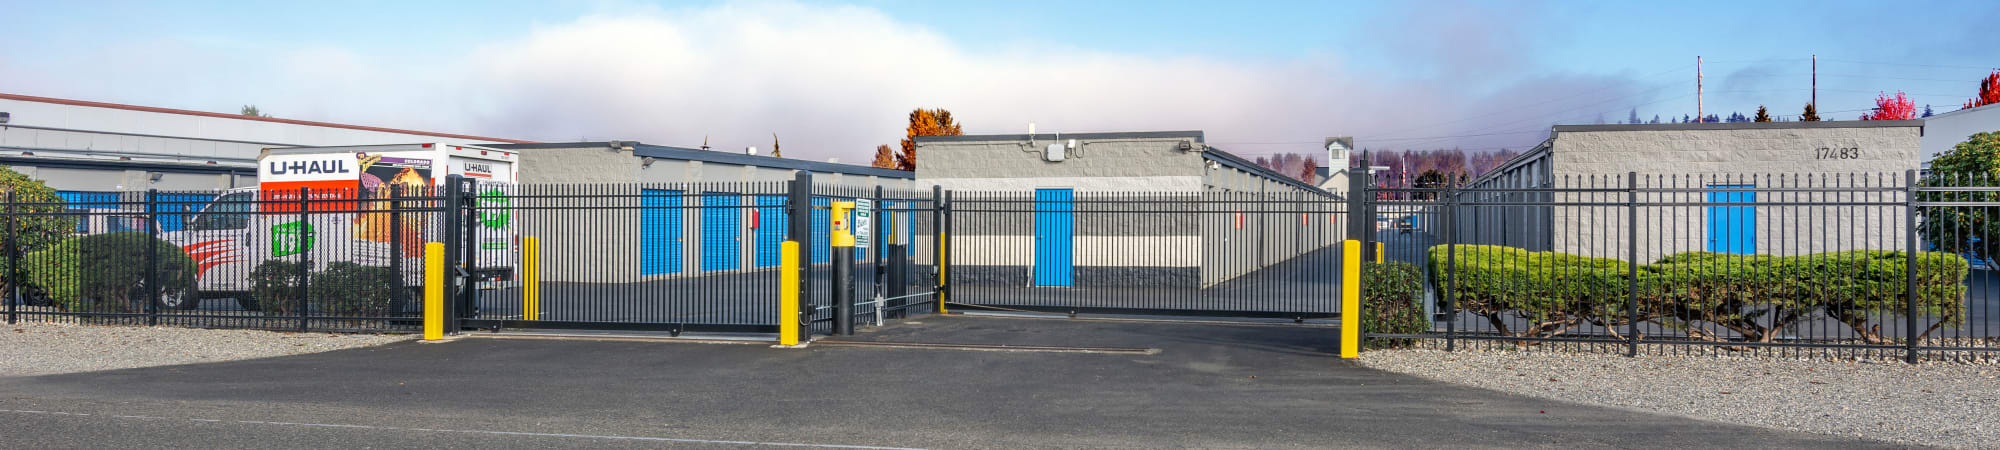 Glacier West Self Storage size guide for units for rent in Monroe, Washington